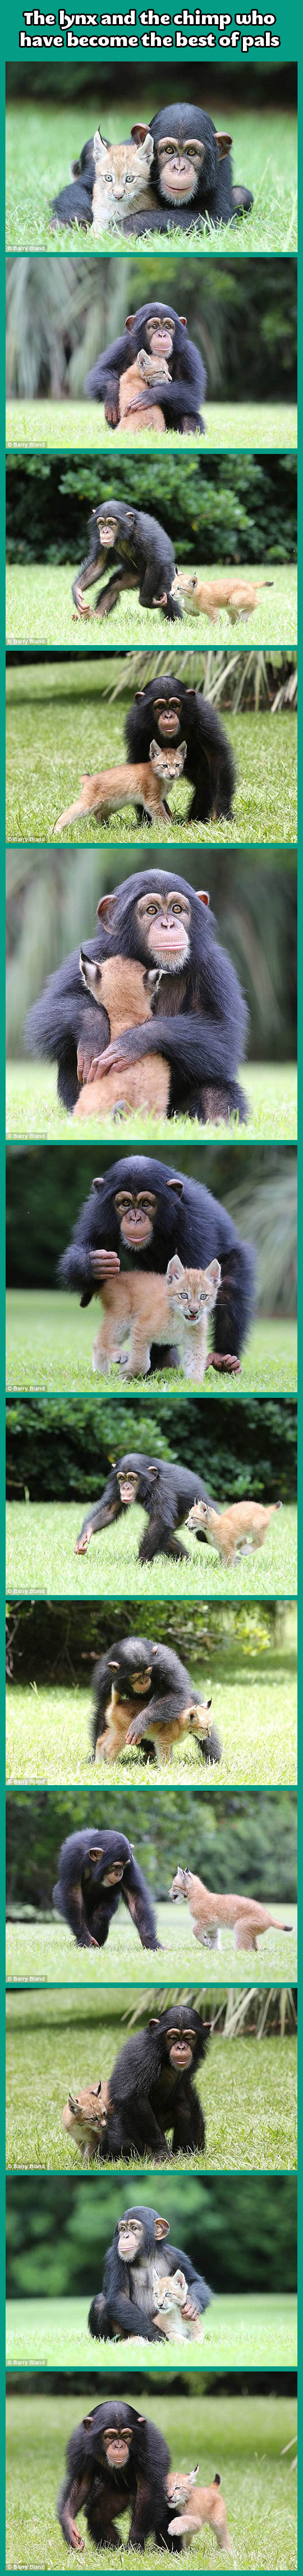 The lynx and the chimp…